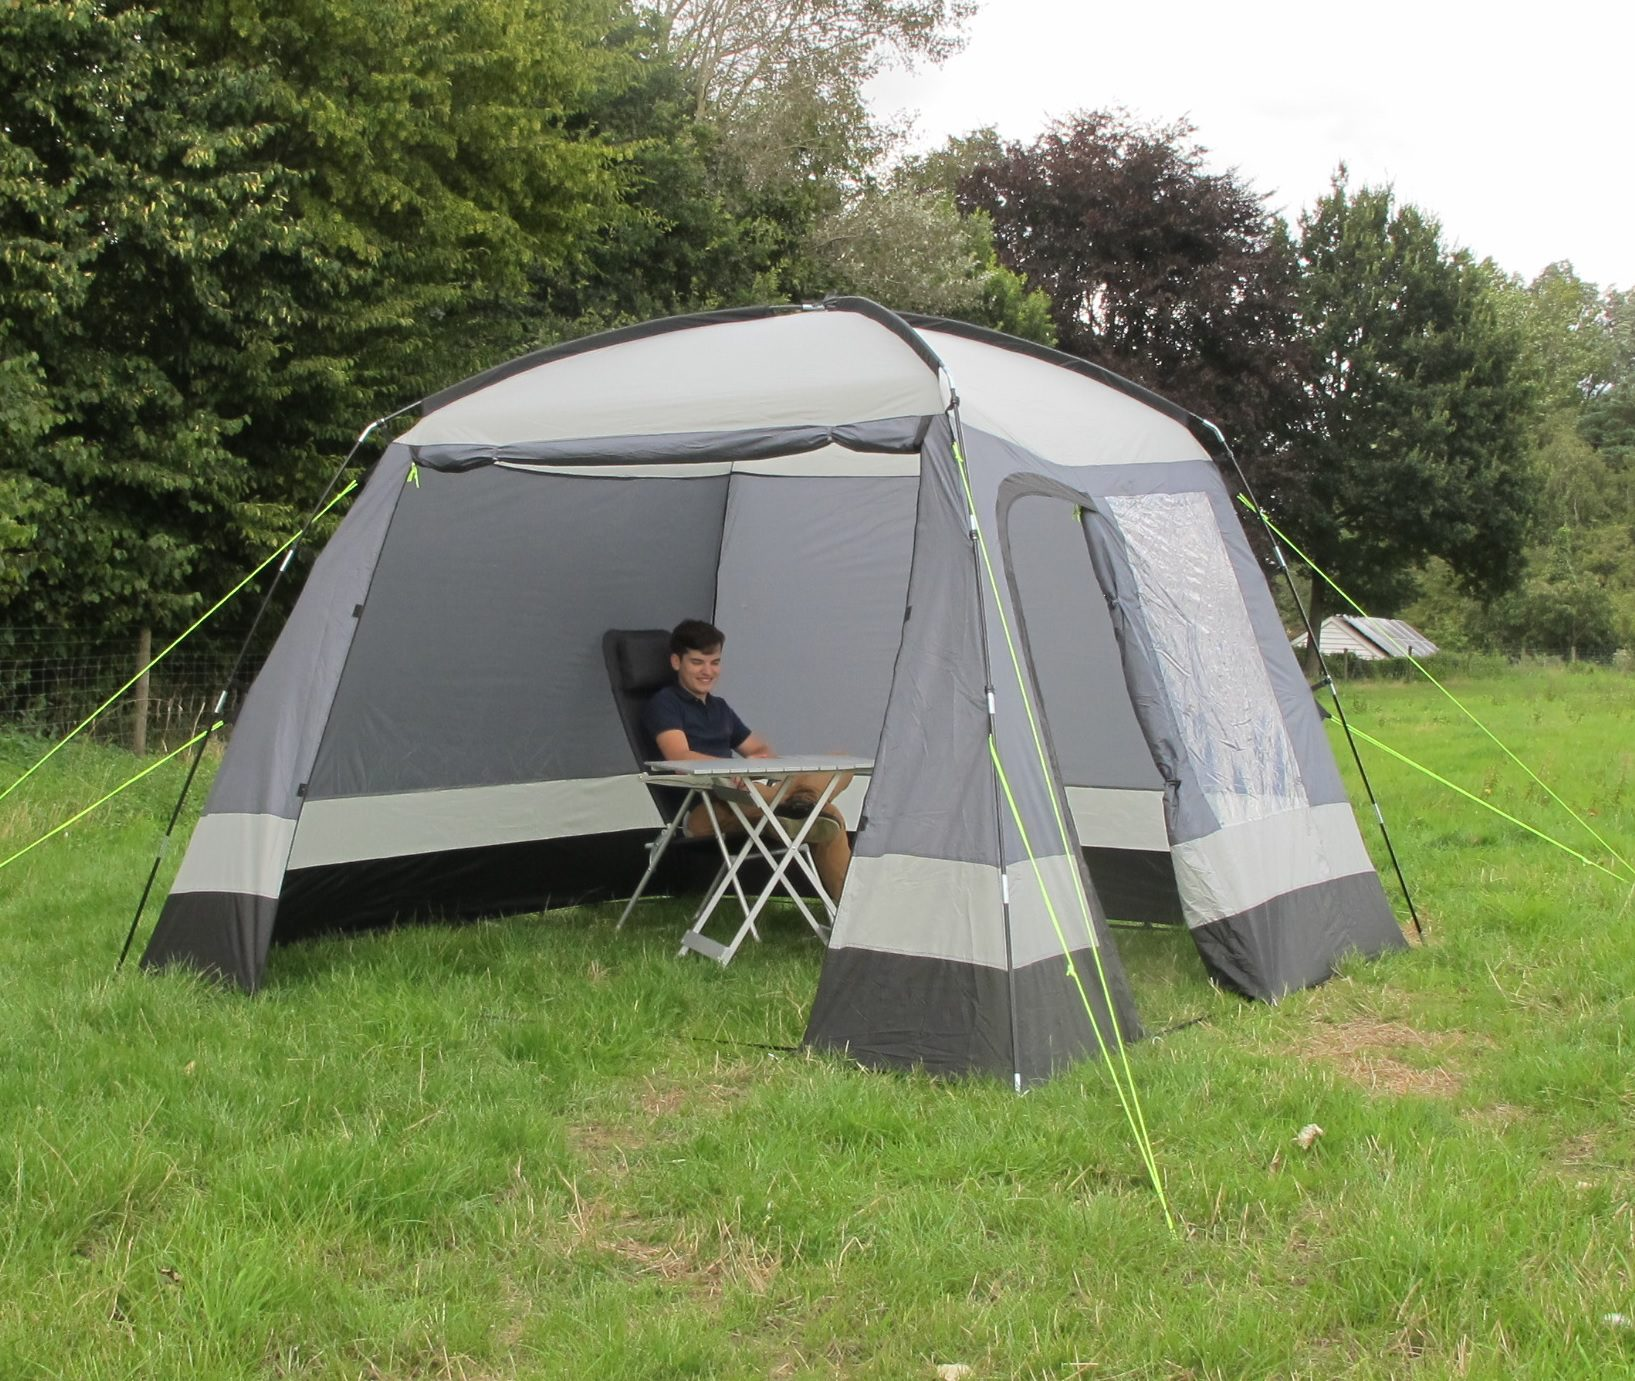 Day Tents & The 3 Day Tents